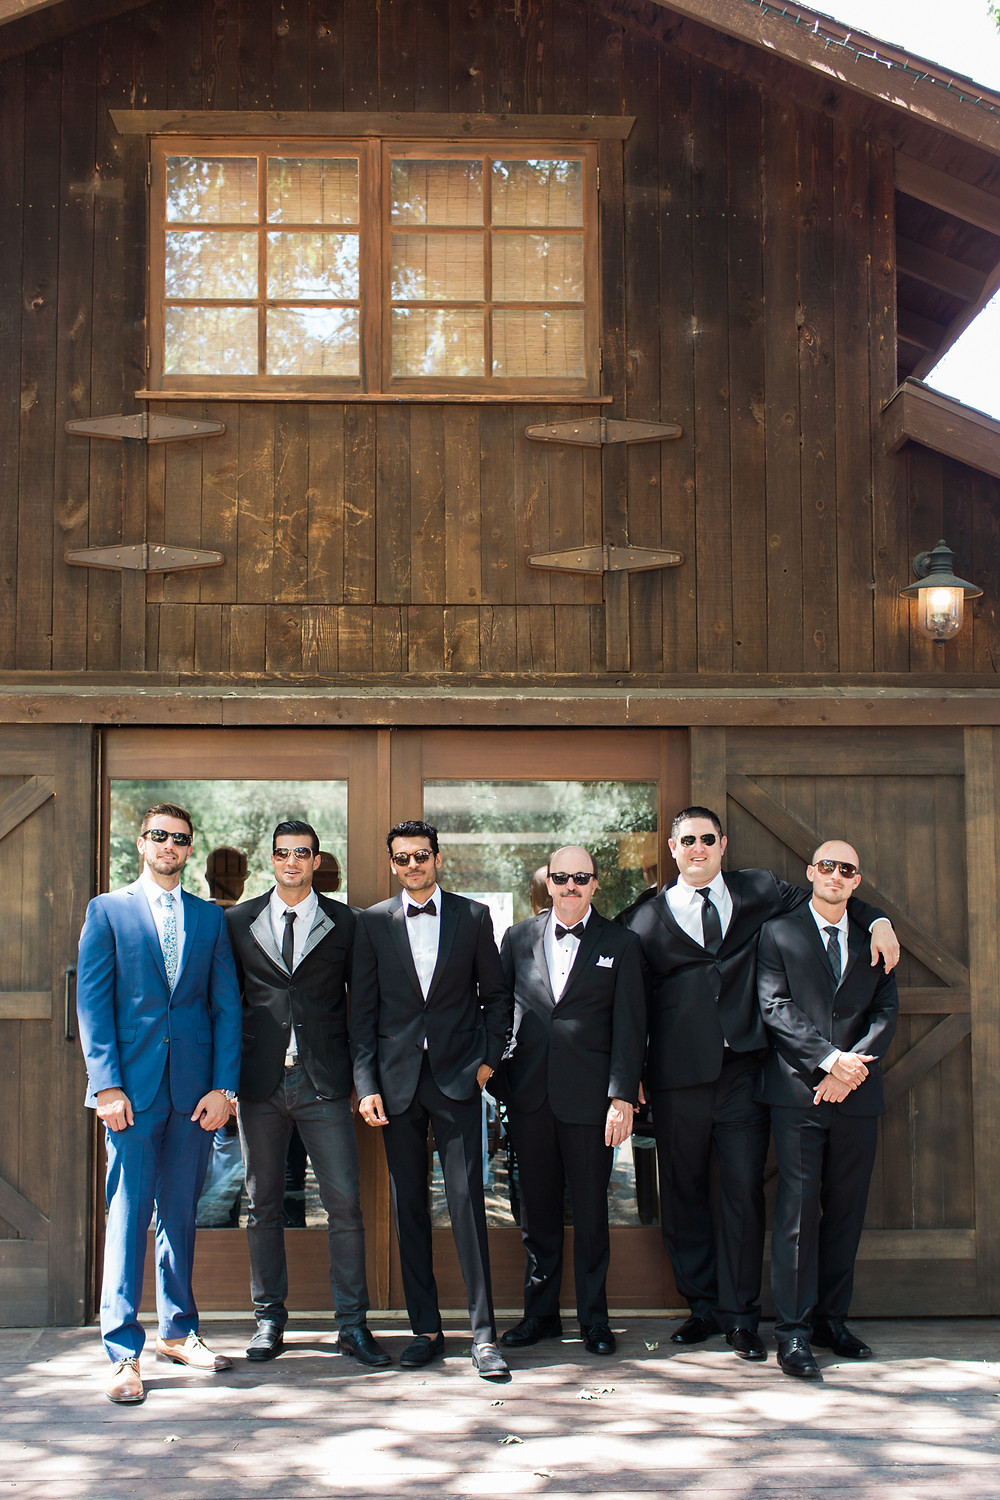 Super cool groomsmen ready for ceremony.